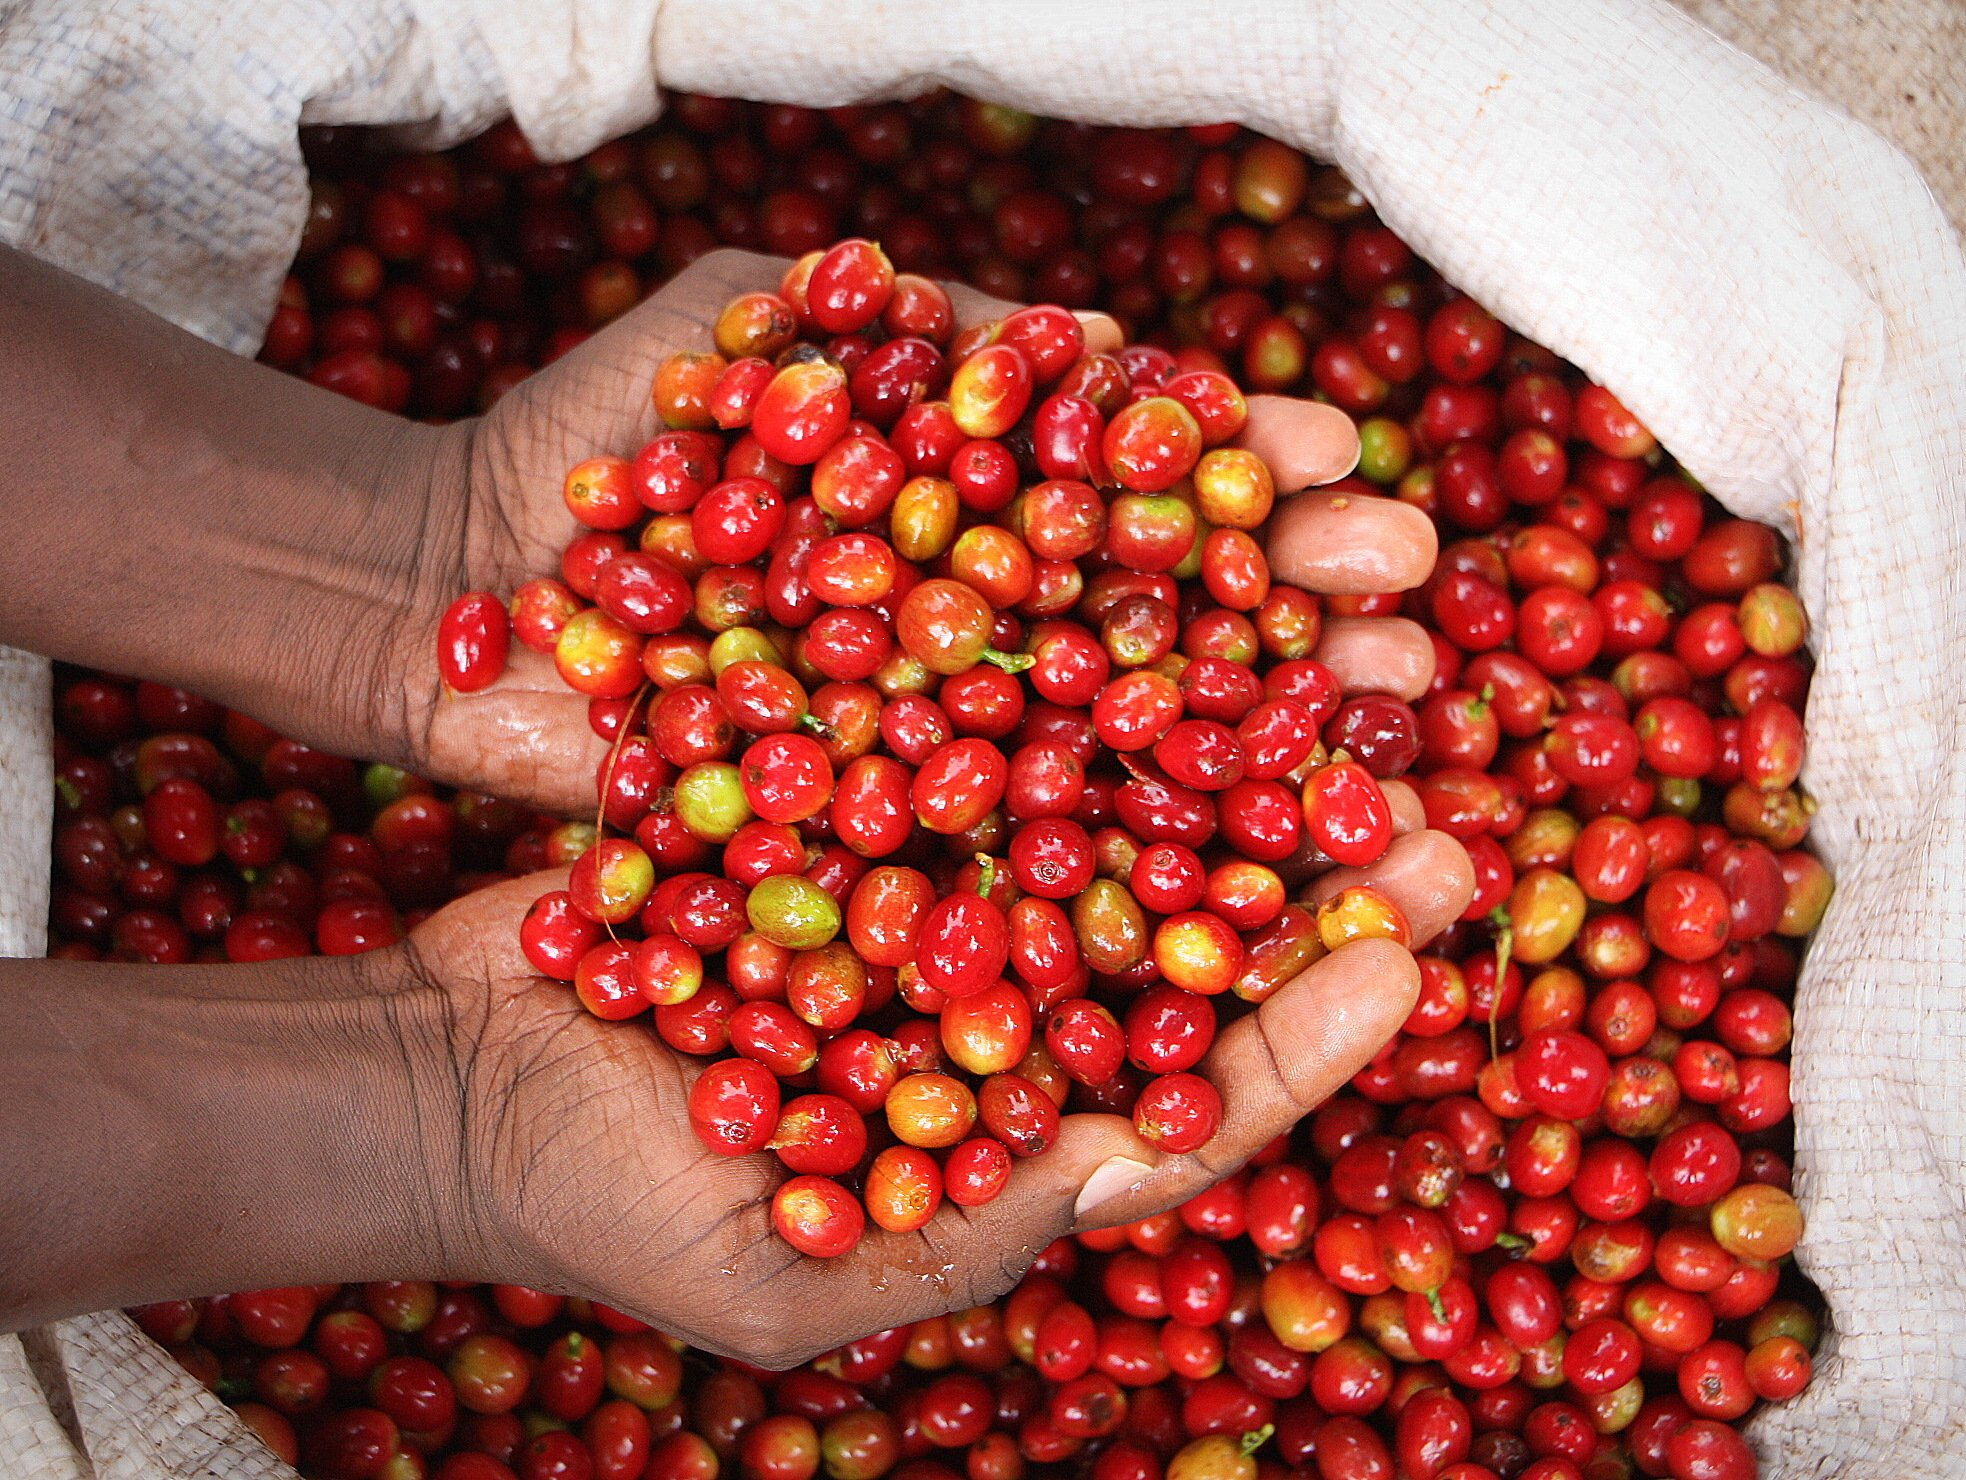 5 LB Ethiopia Limu Gera Unroasted Green Coffee Beans, 100% Specialty Arabica Raw Beans for Home Roasting